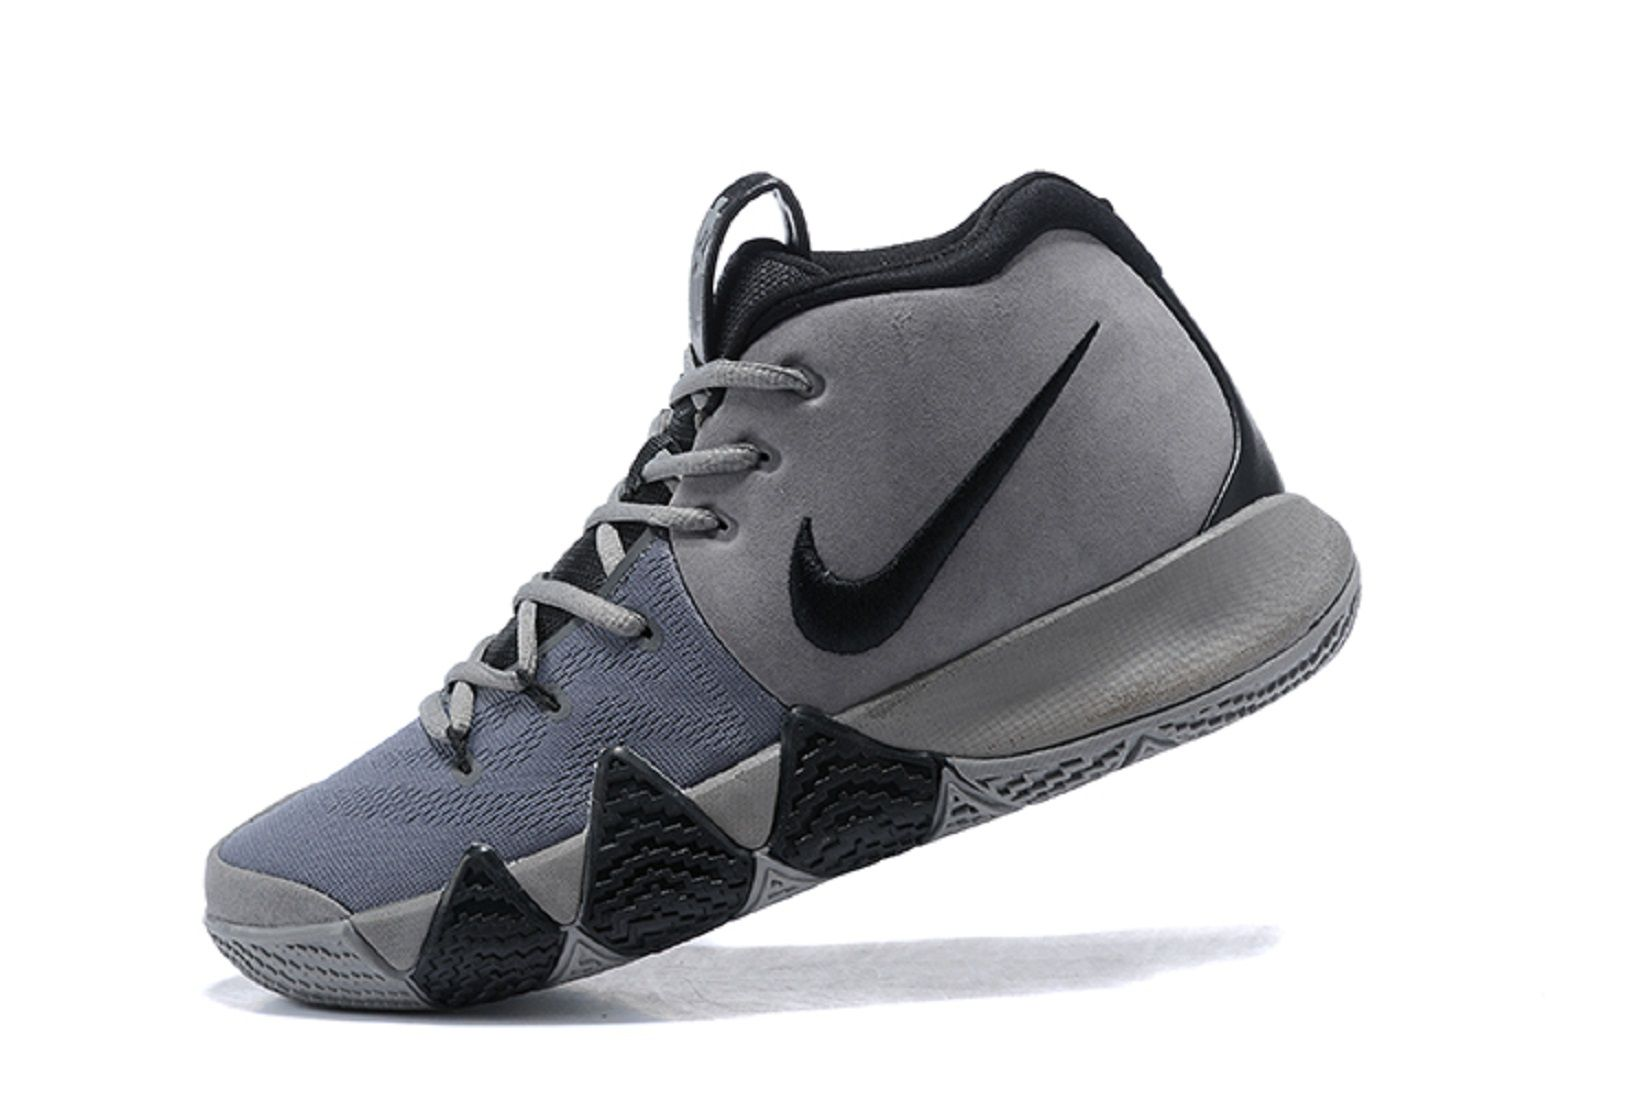 Nike Kyrie 4 Wolf Gray/black Gray Basketball Shoes shop offer sale online pay with paypal sale online outlet eastbay for nice cheap price IzbHZR